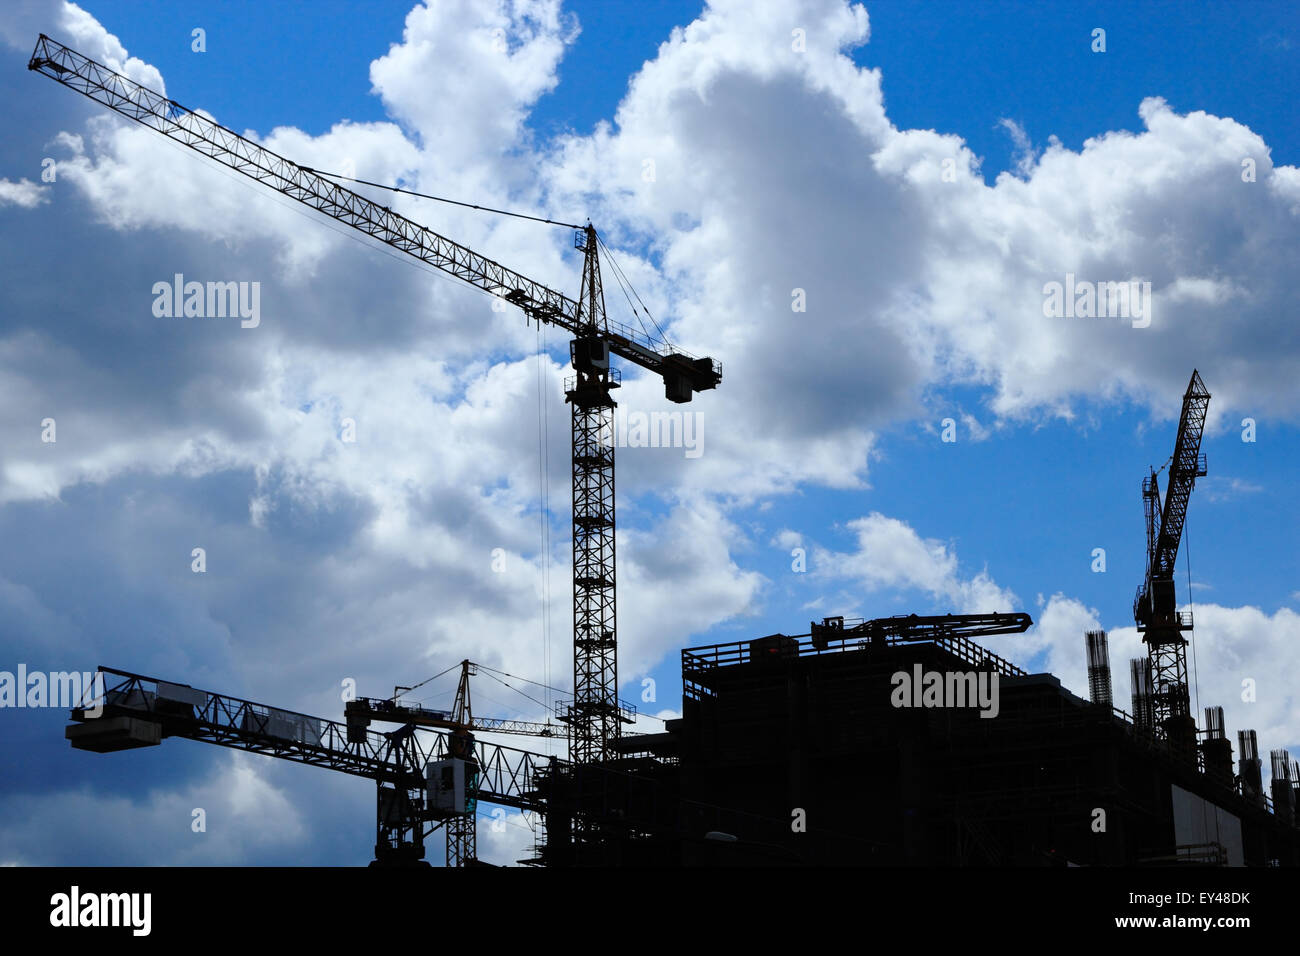 Construction site with a few cranes silhouetted against blue sky and clouds. - Stock Image